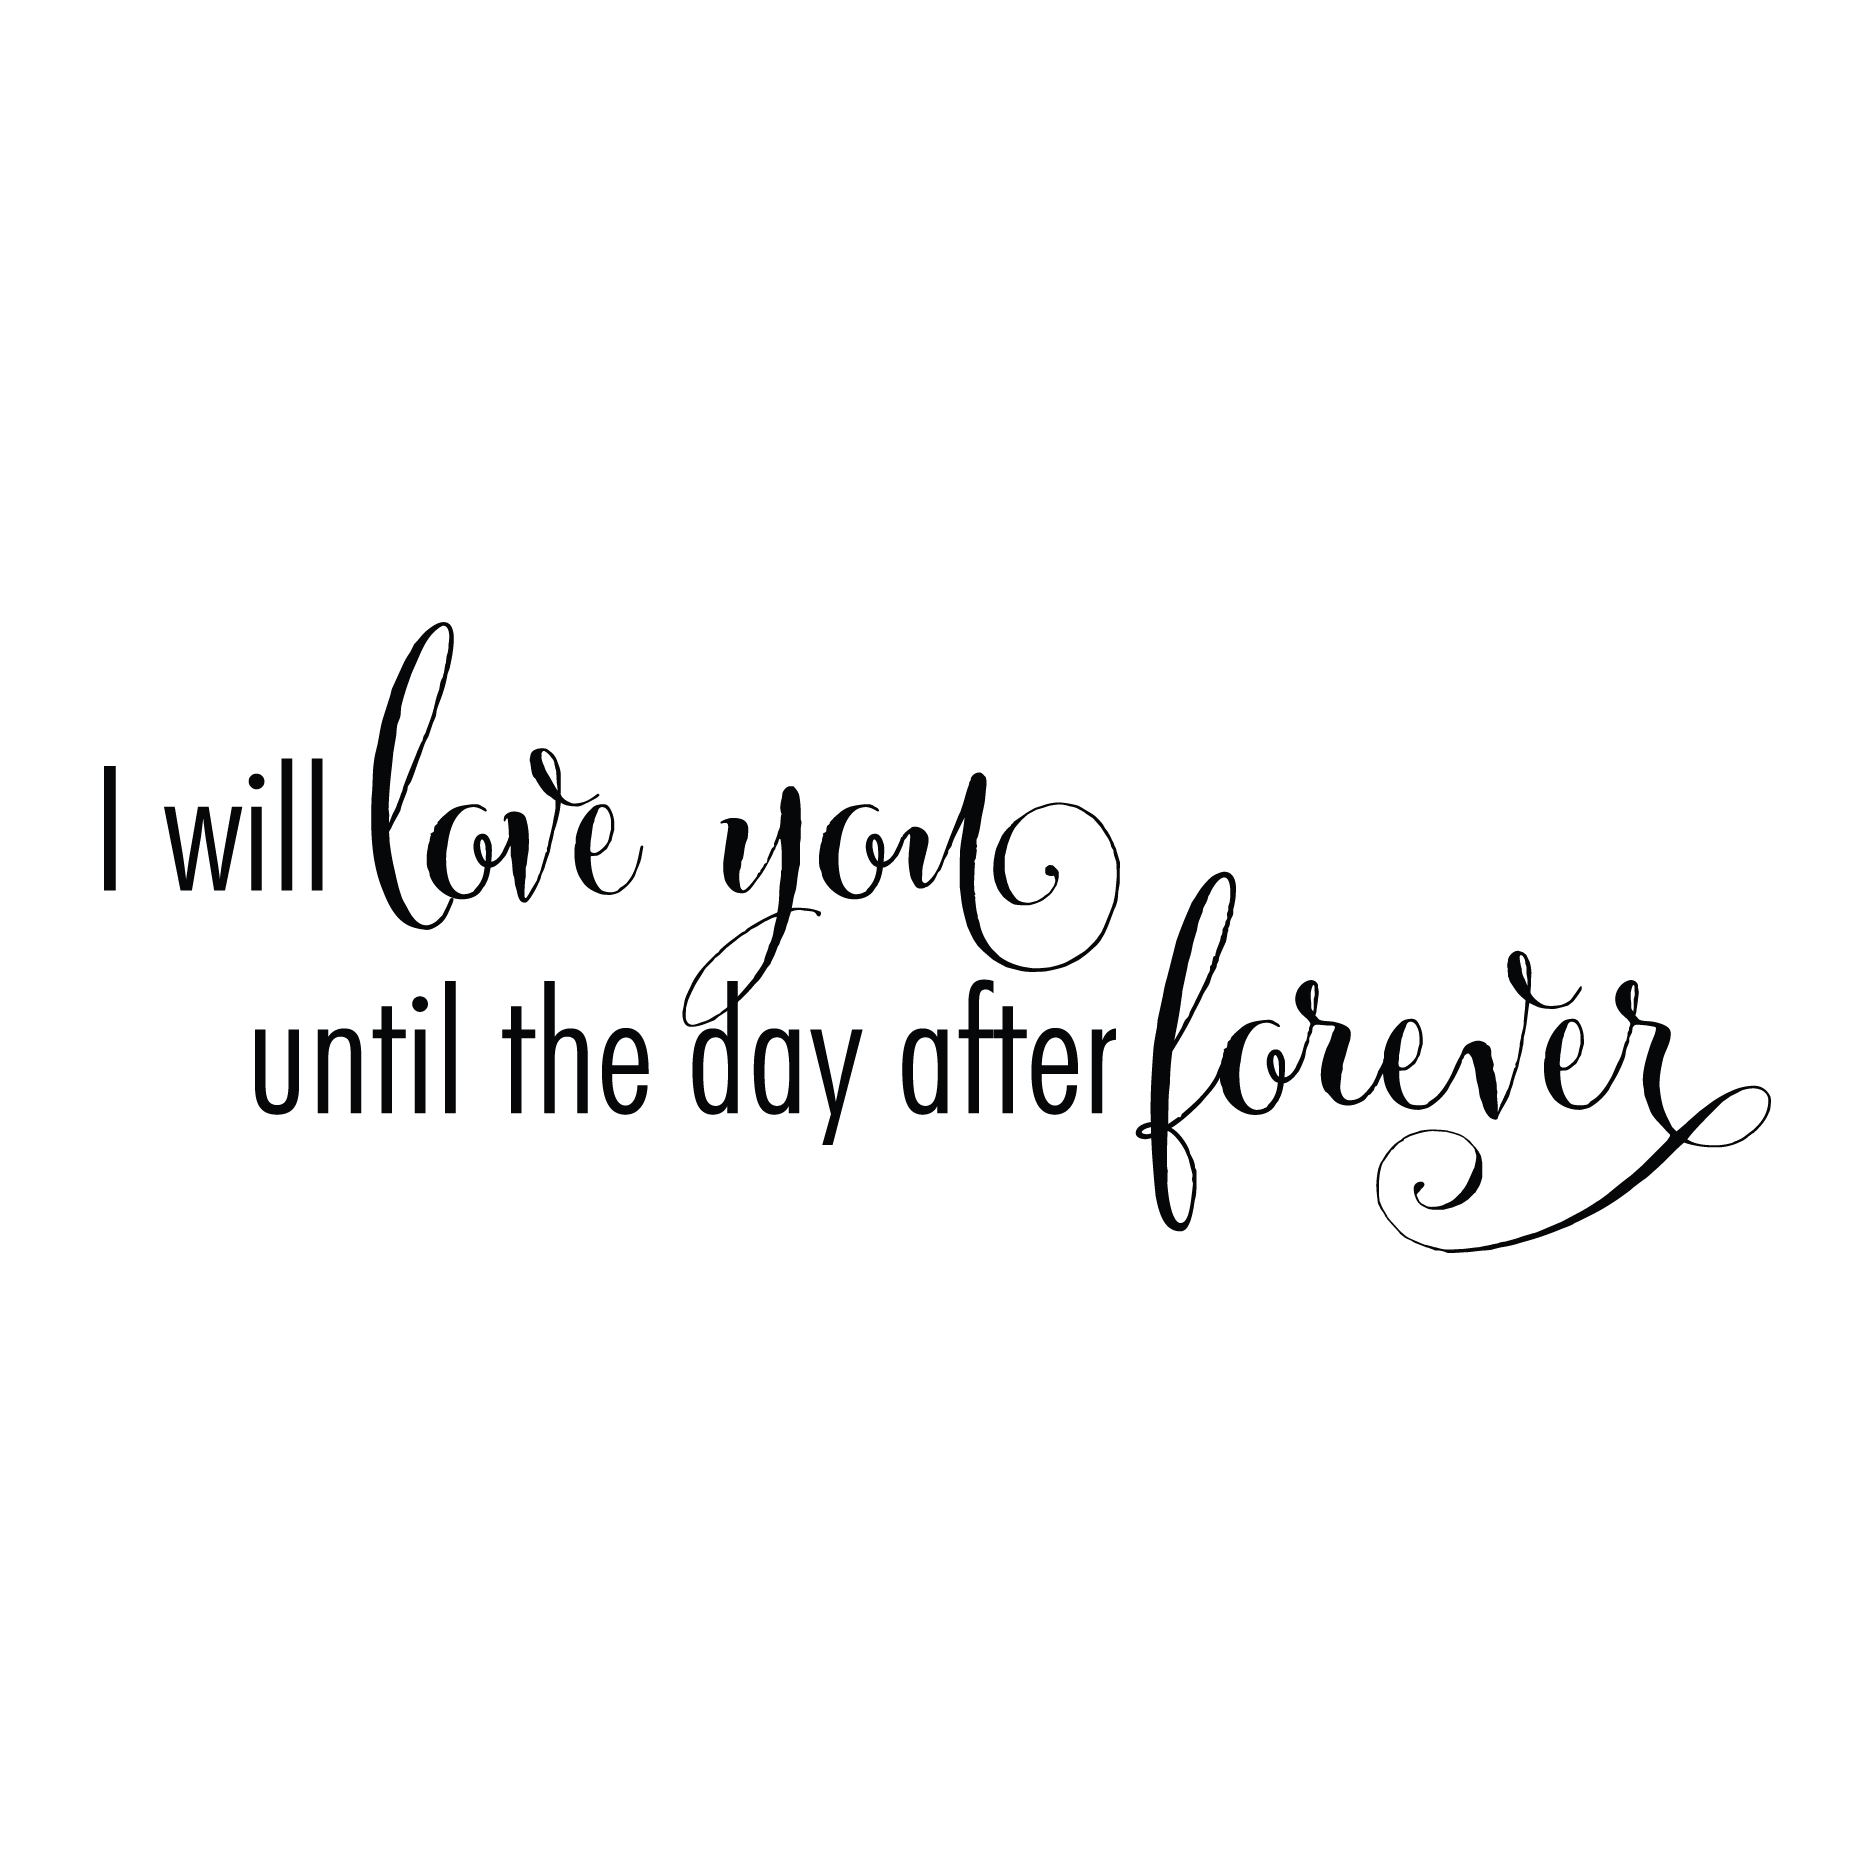 The day after forever wall quotes decal wallquotes i will love you until the day after forever buycottarizona Choice Image